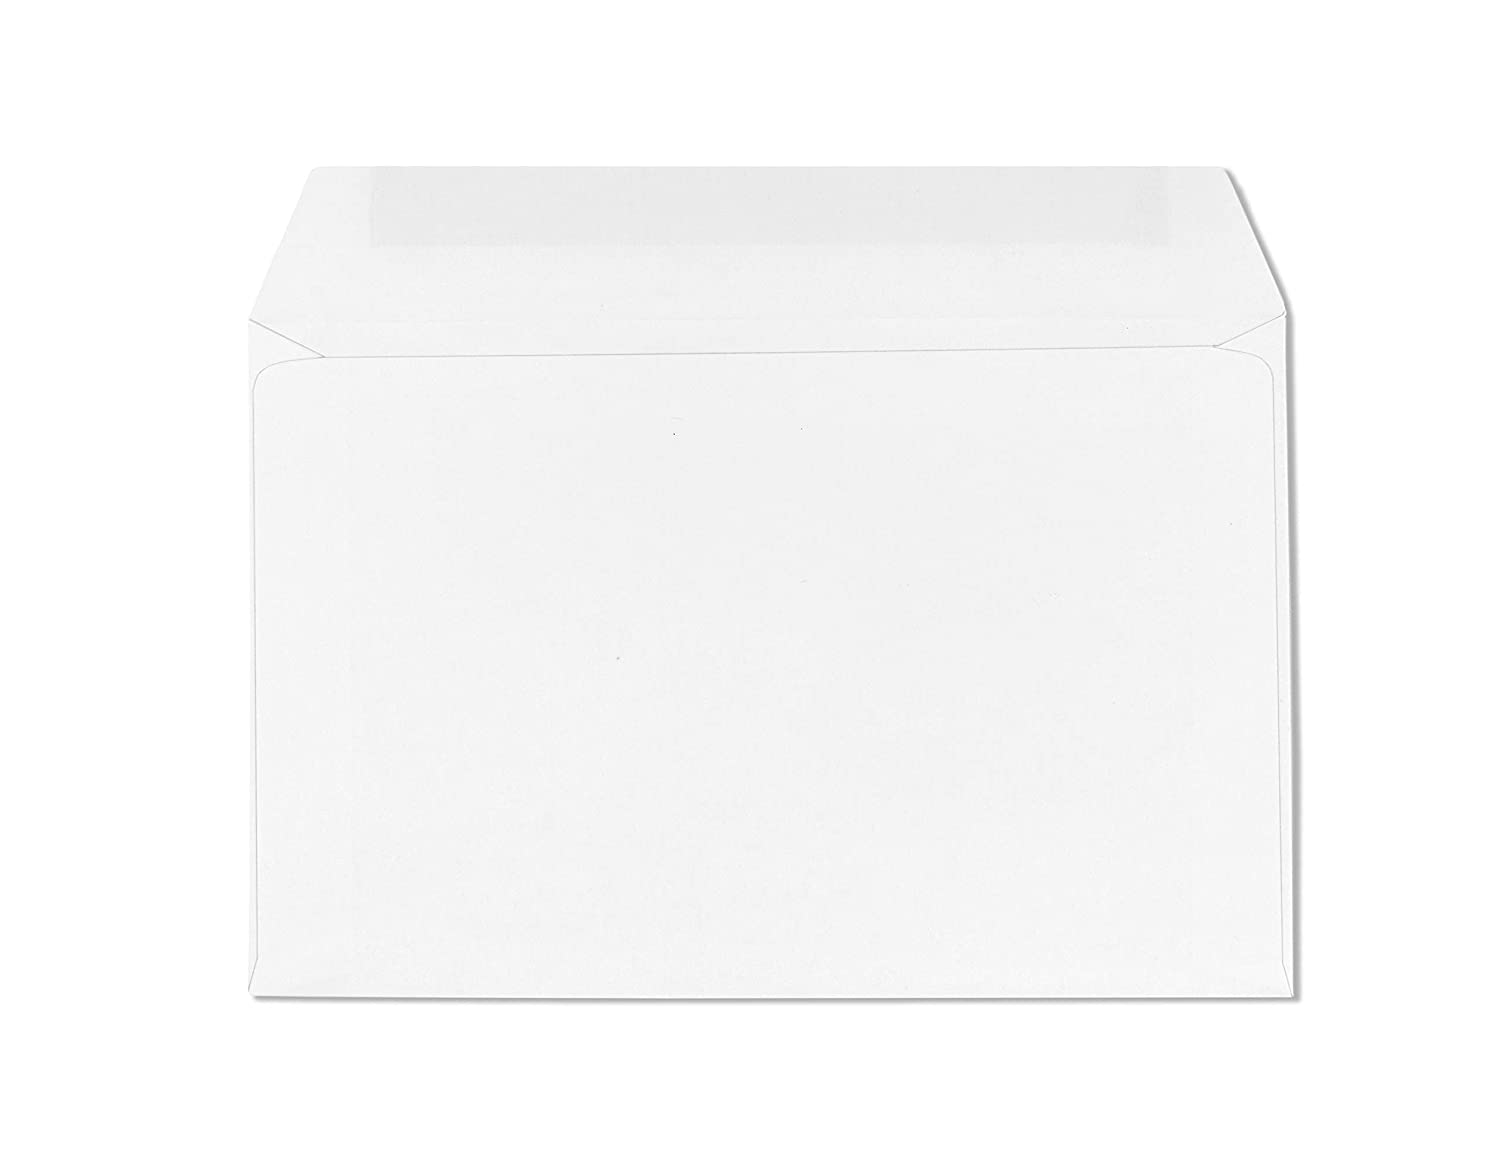 6 x 9 Envelopes Booklet-Open Side Envelopes-50 Pack (White) Check O Matic COM302